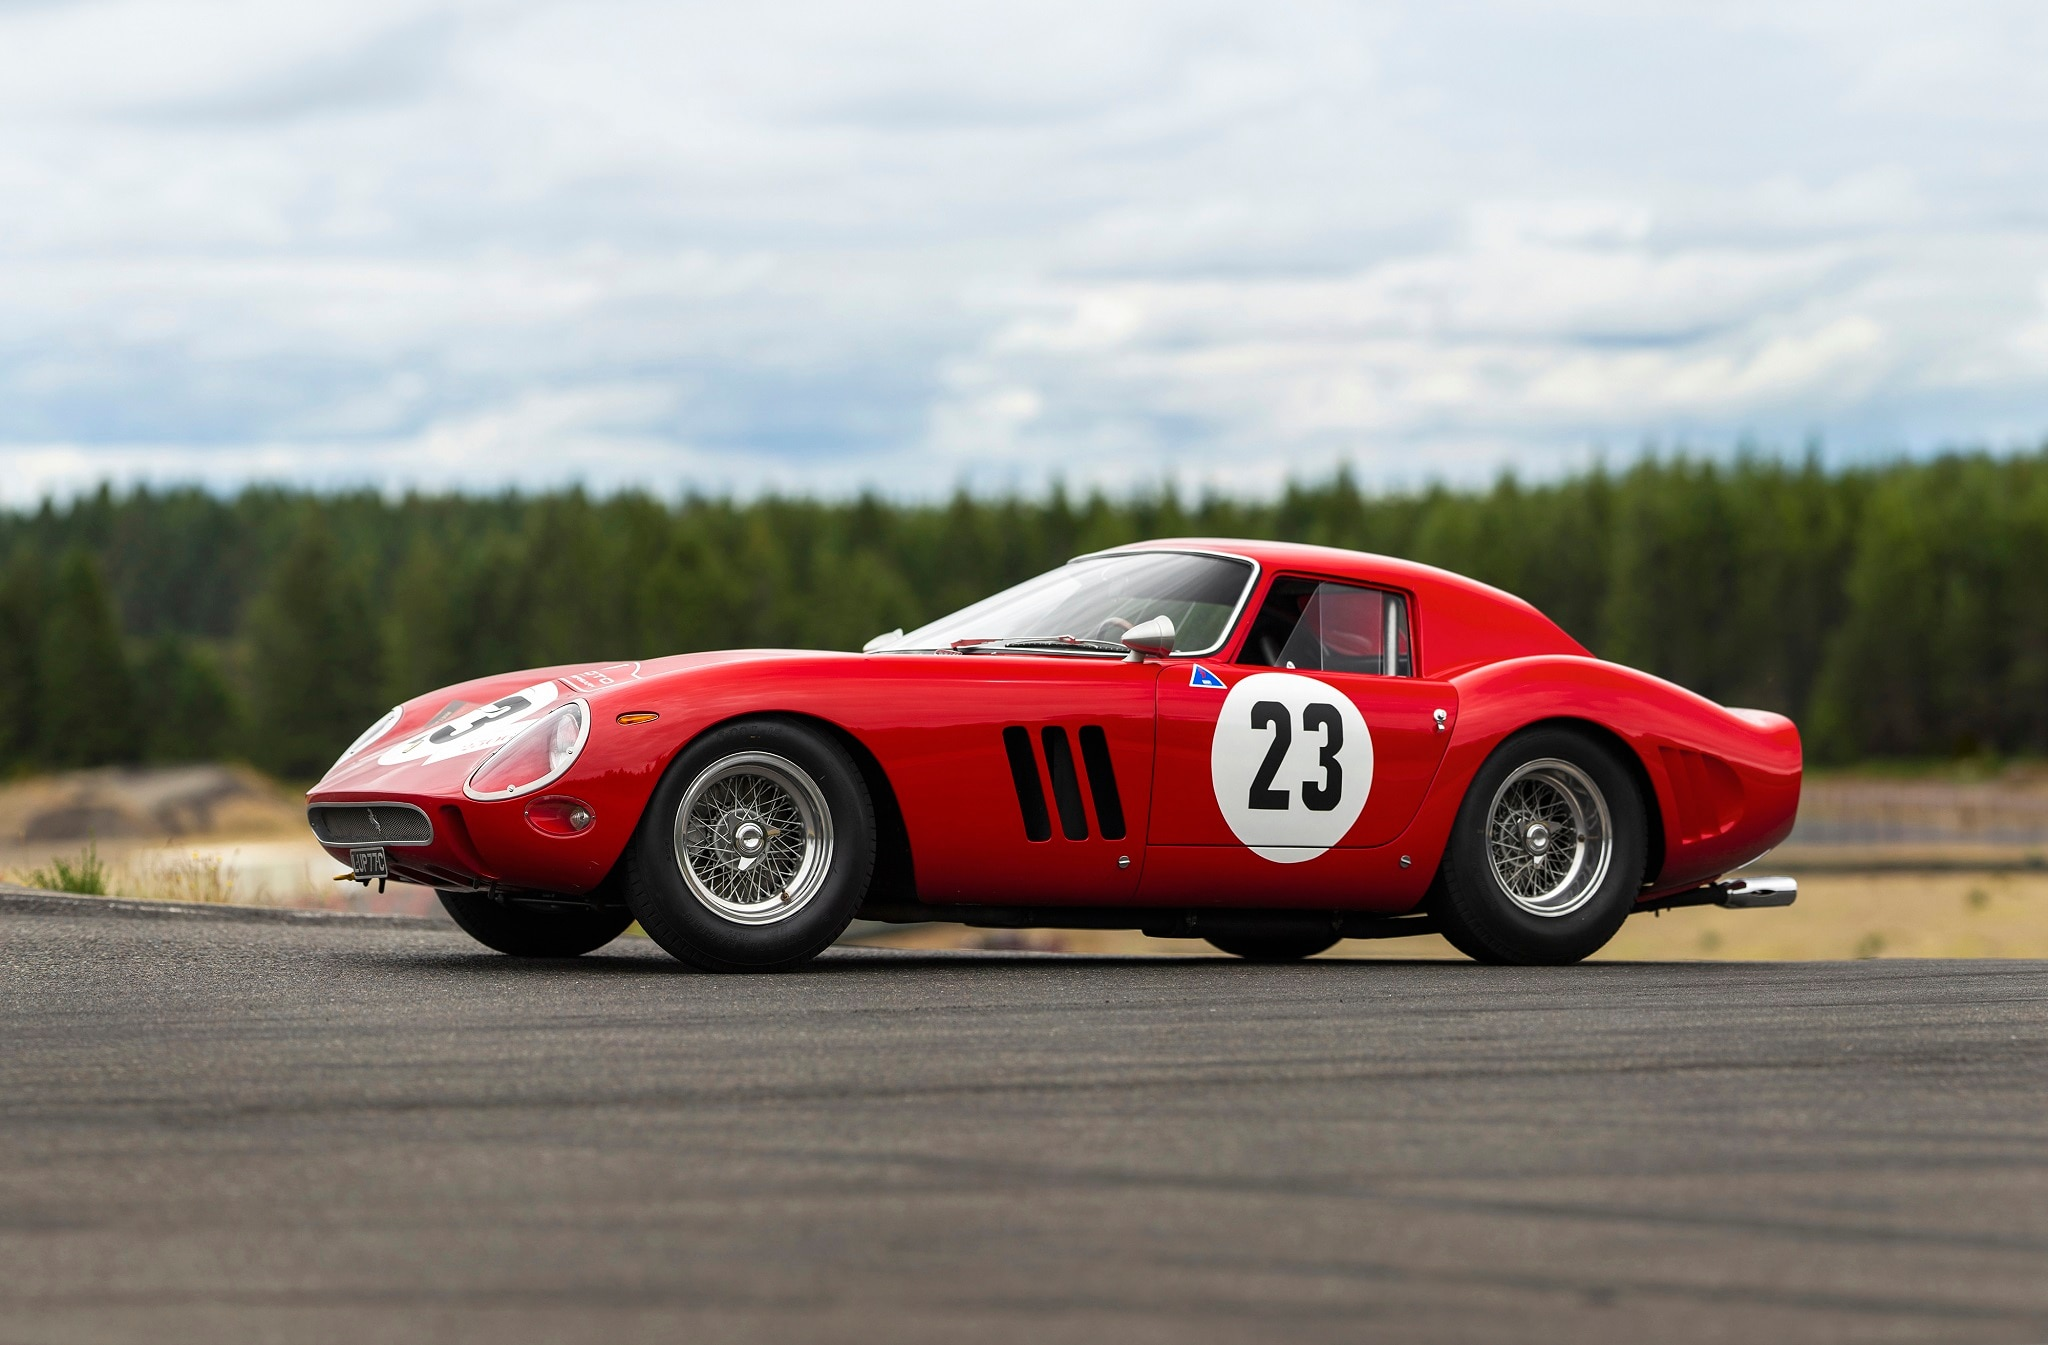 Ferrari 250 GTO on auction for 60 million